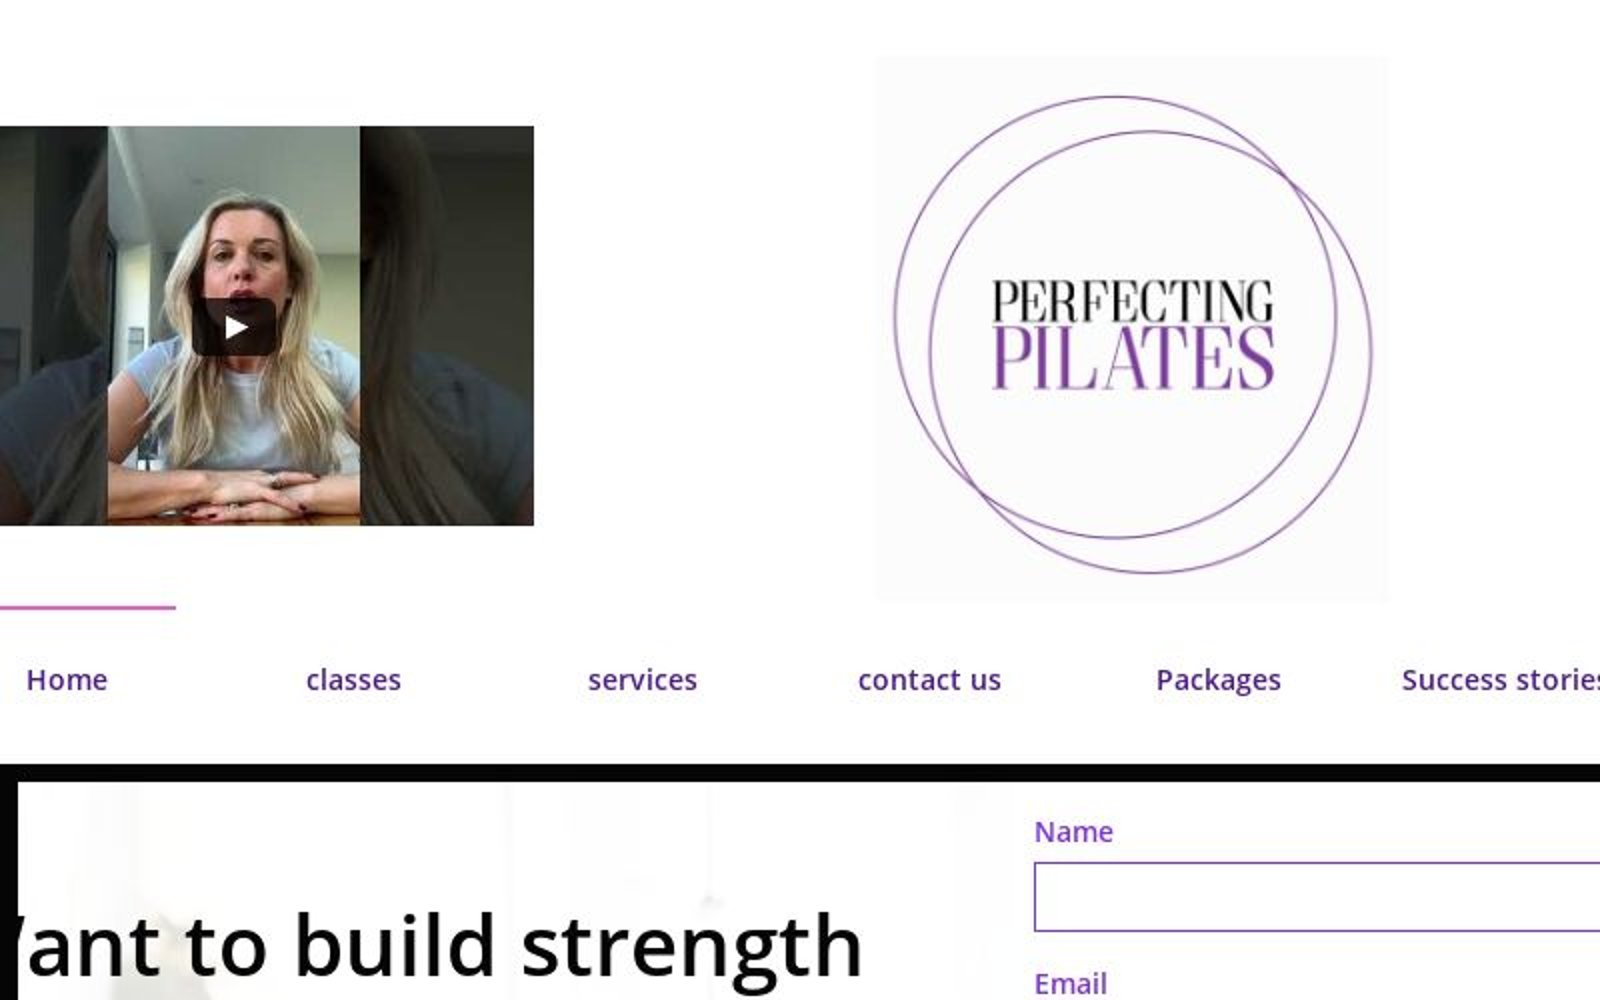 perfectingpilates